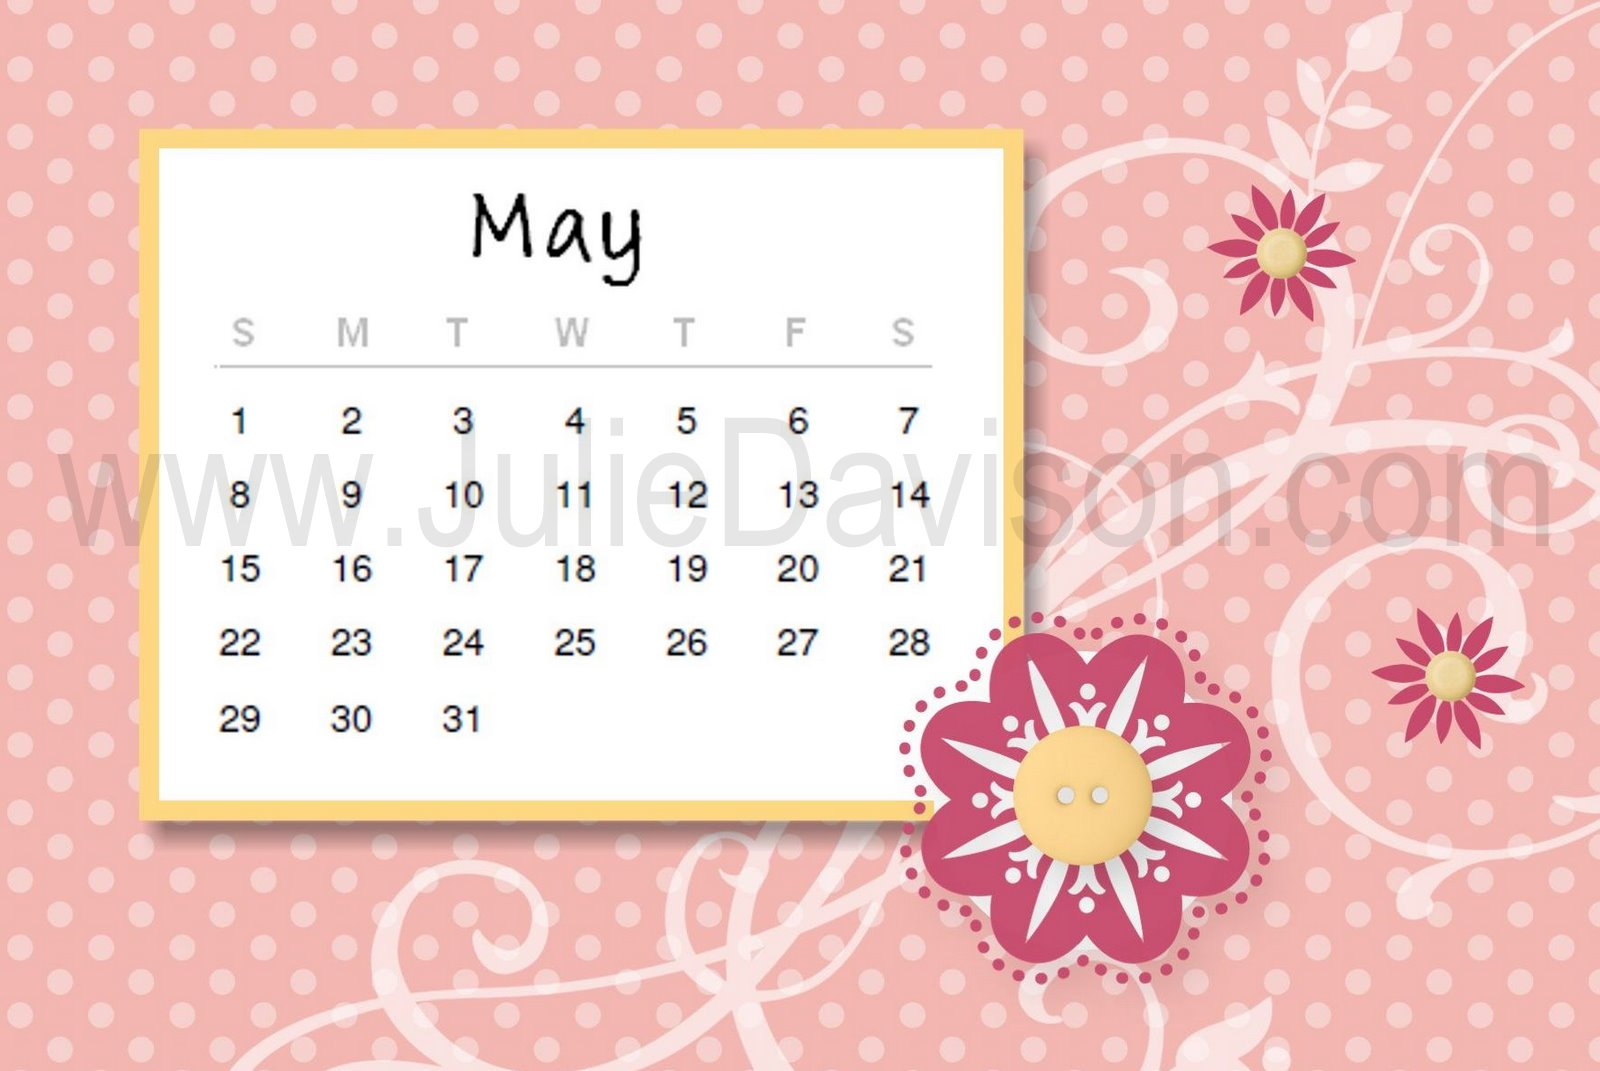 May Calendar Ideas : Julie s stamping spot stampin up project ideas by